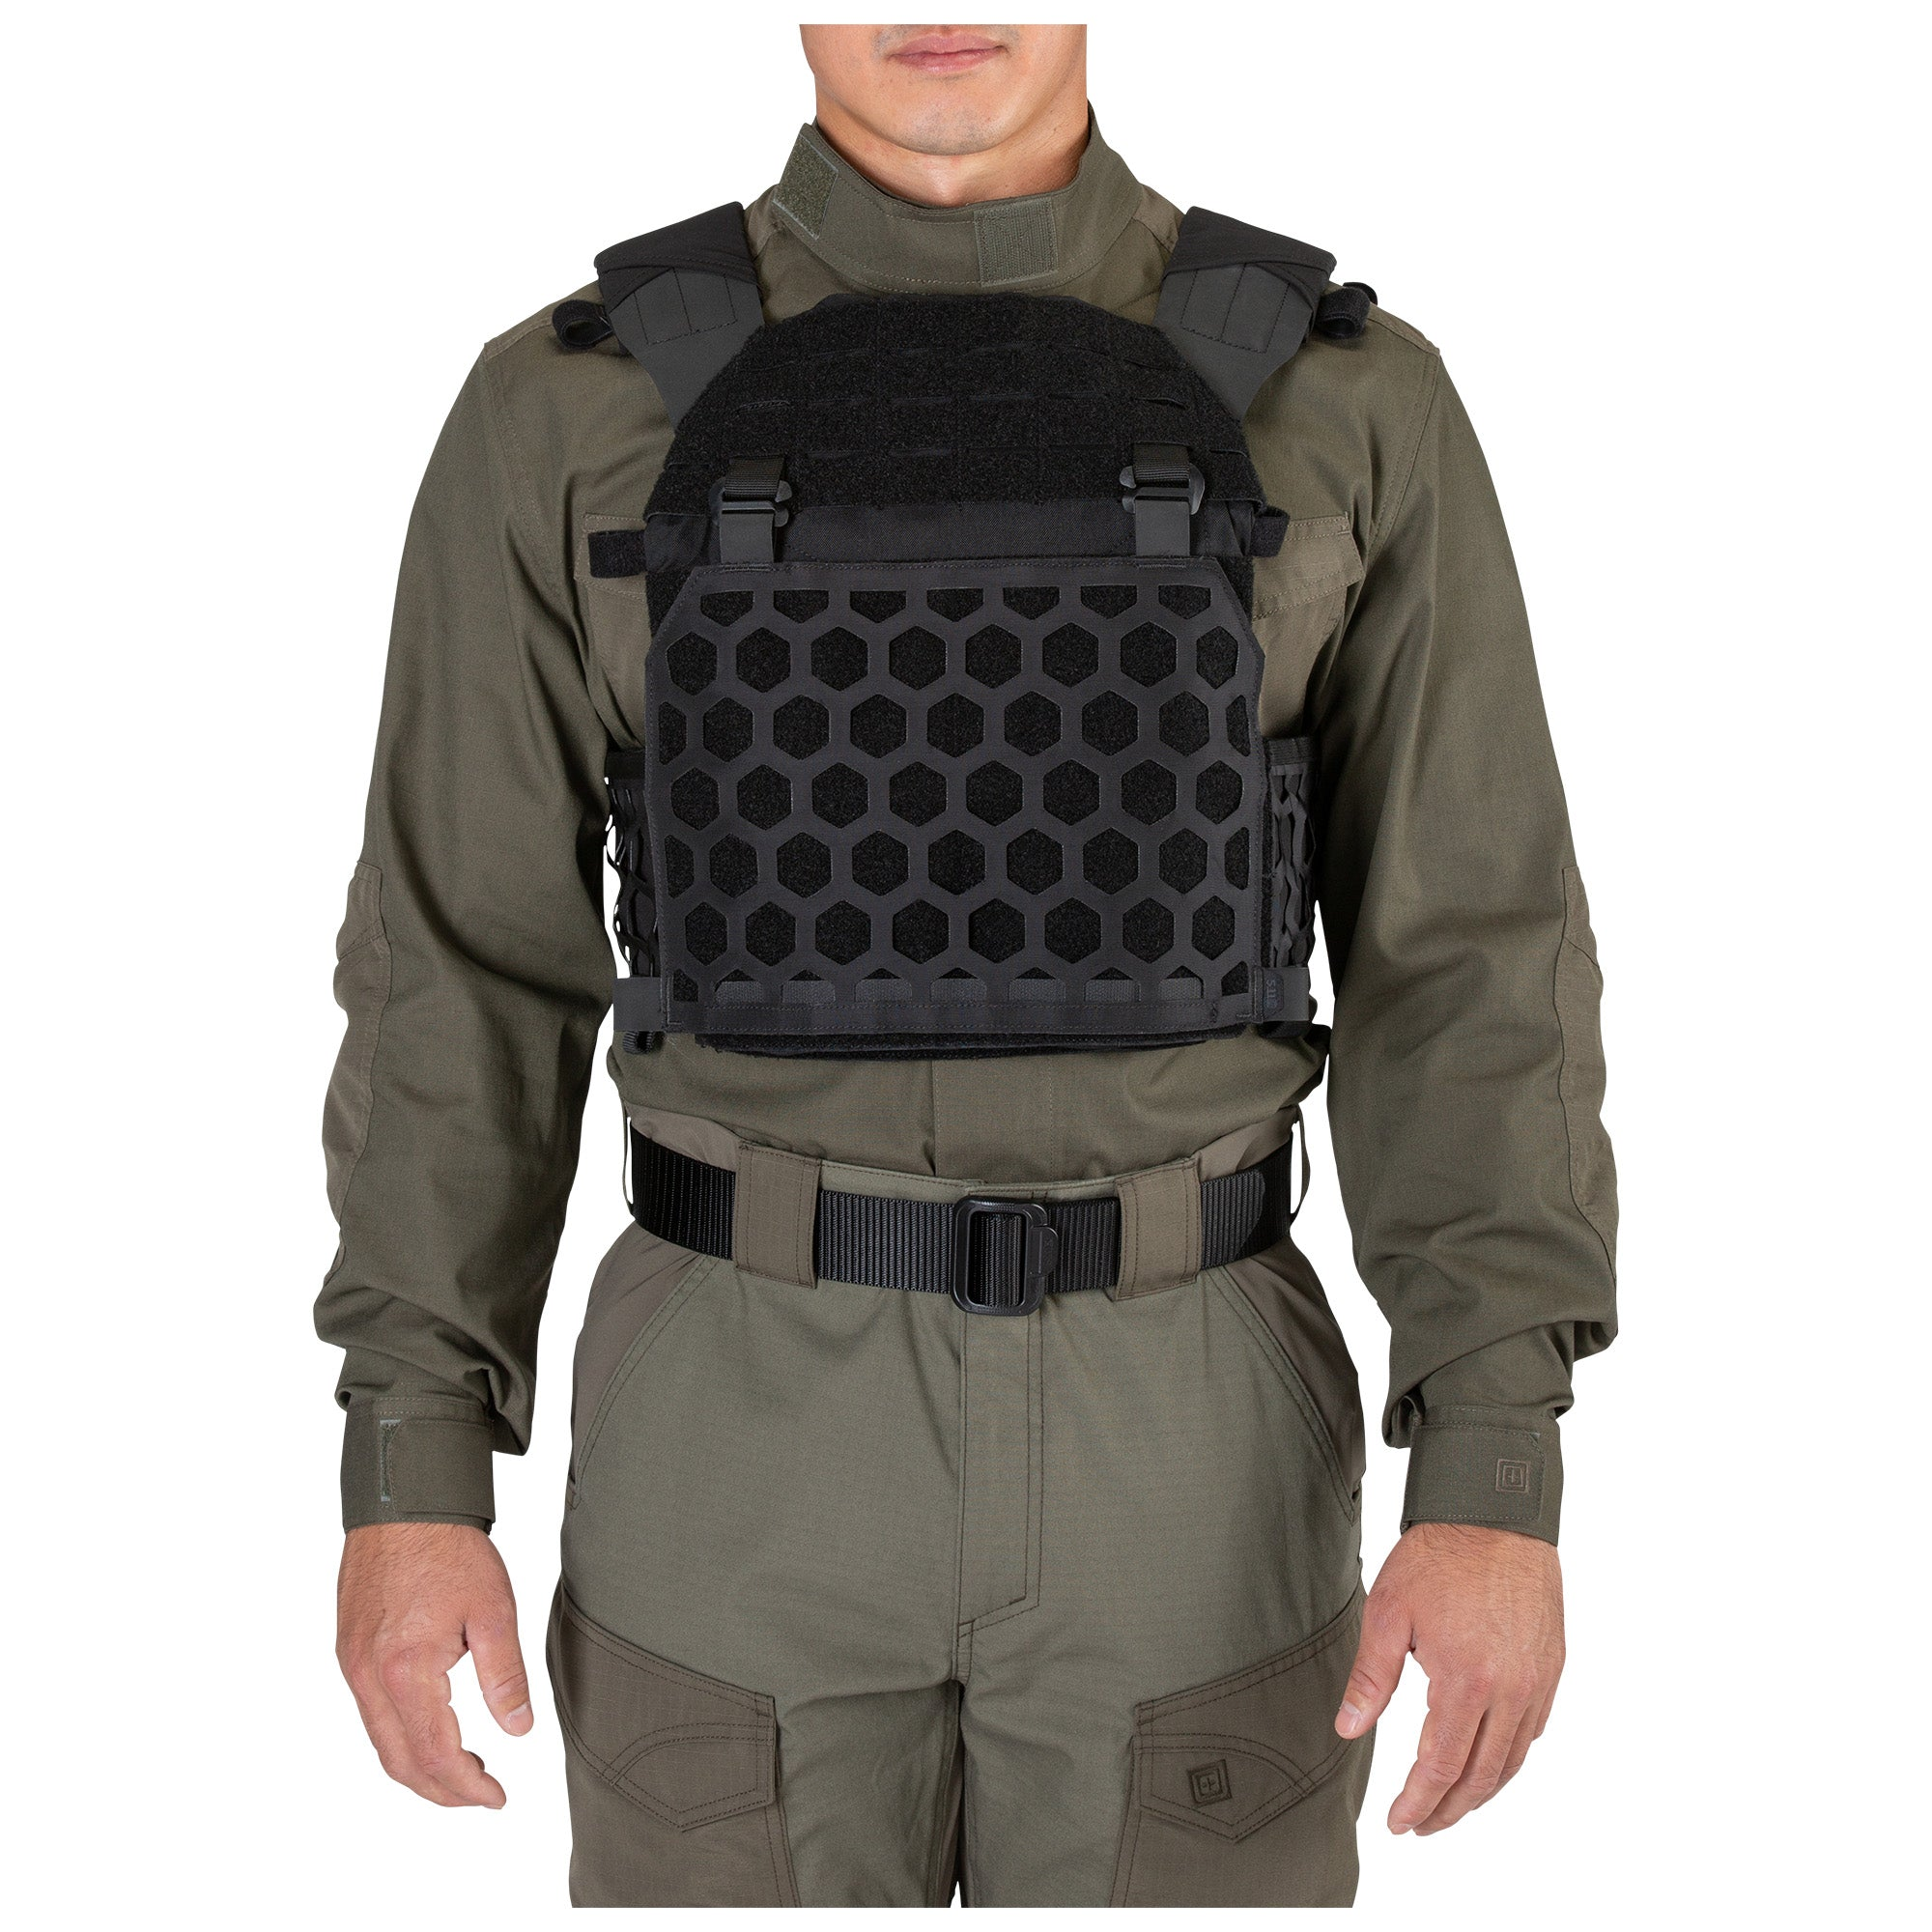 All Mission Plate Carrier